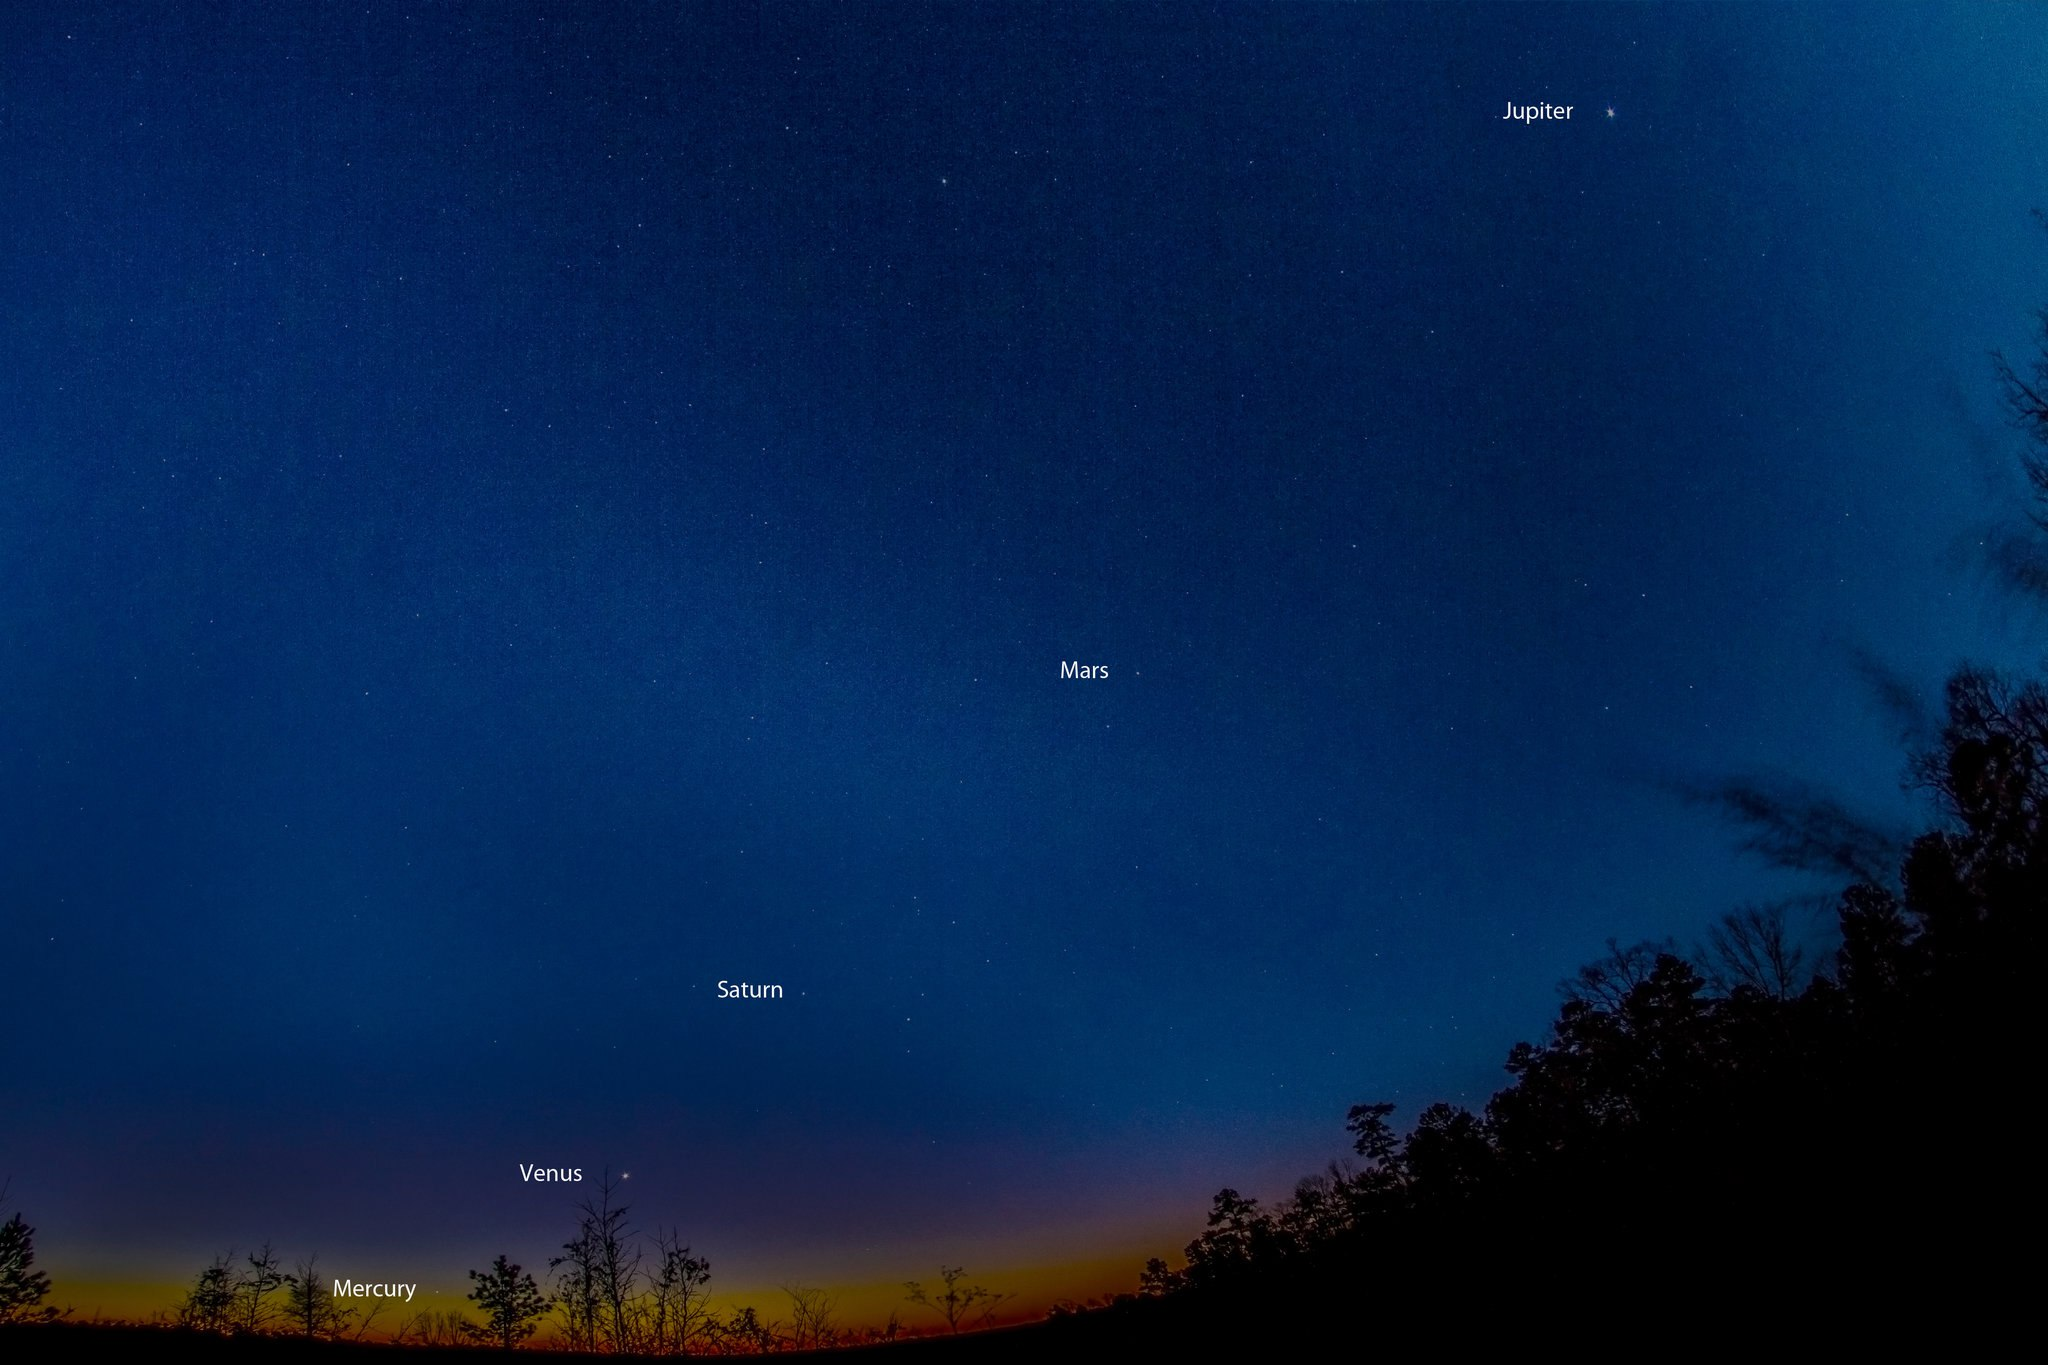 parade of the five planets, grand parade of five planets, five planets align in morning sky, parade of planets in morning sky, parade of five planets sky, parade five planets february 2016, parade of five planets pictures, grand parade of five planets february 2016